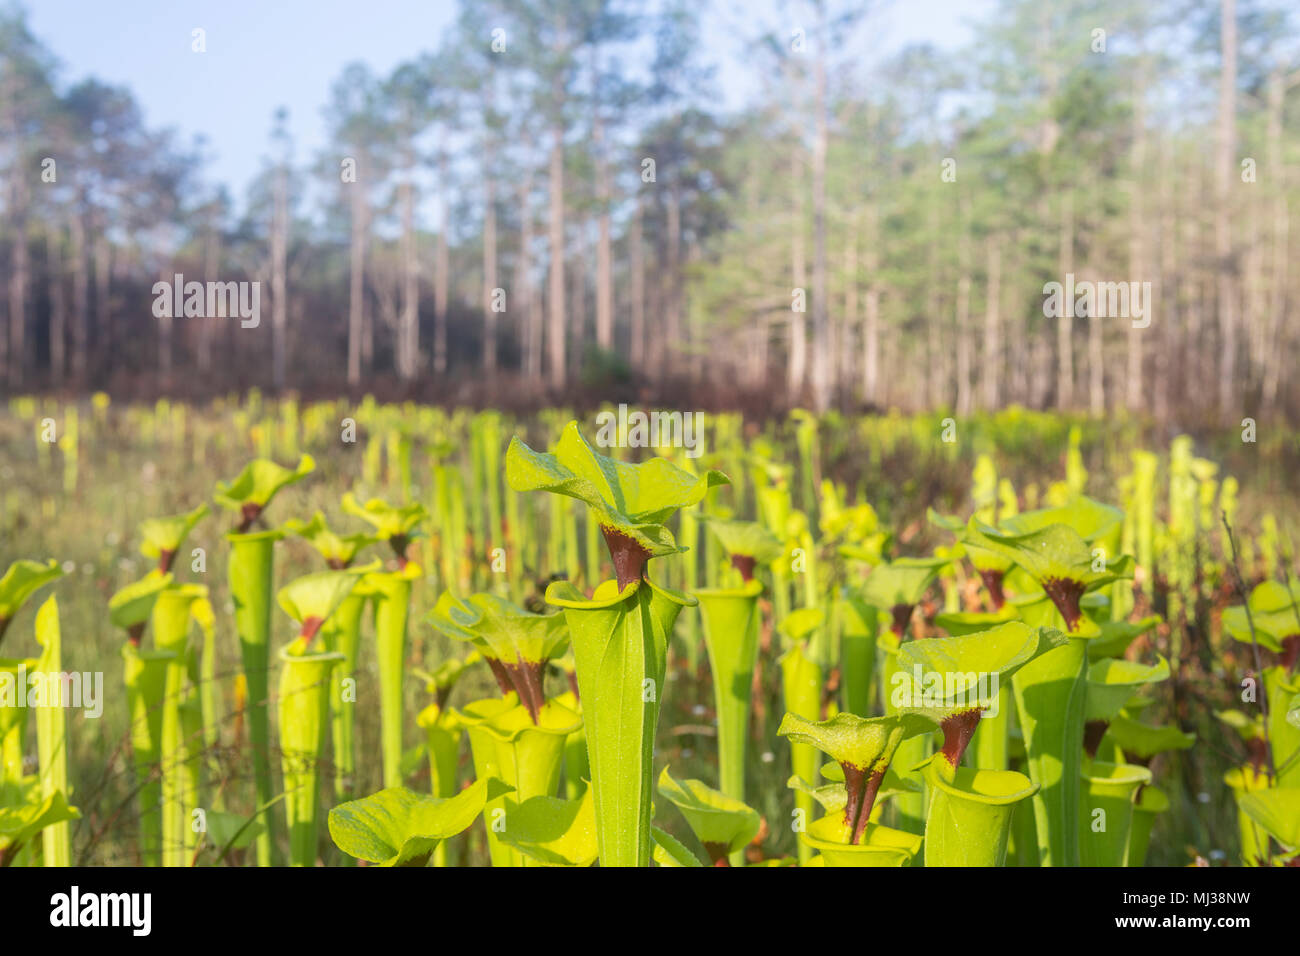 Yellow Pitcherplants (Sarracenia flava var. rugelii) are abundant in this seepage slope/wet prairie habitat in Apalachicola National Forest, Florida. - Stock Image